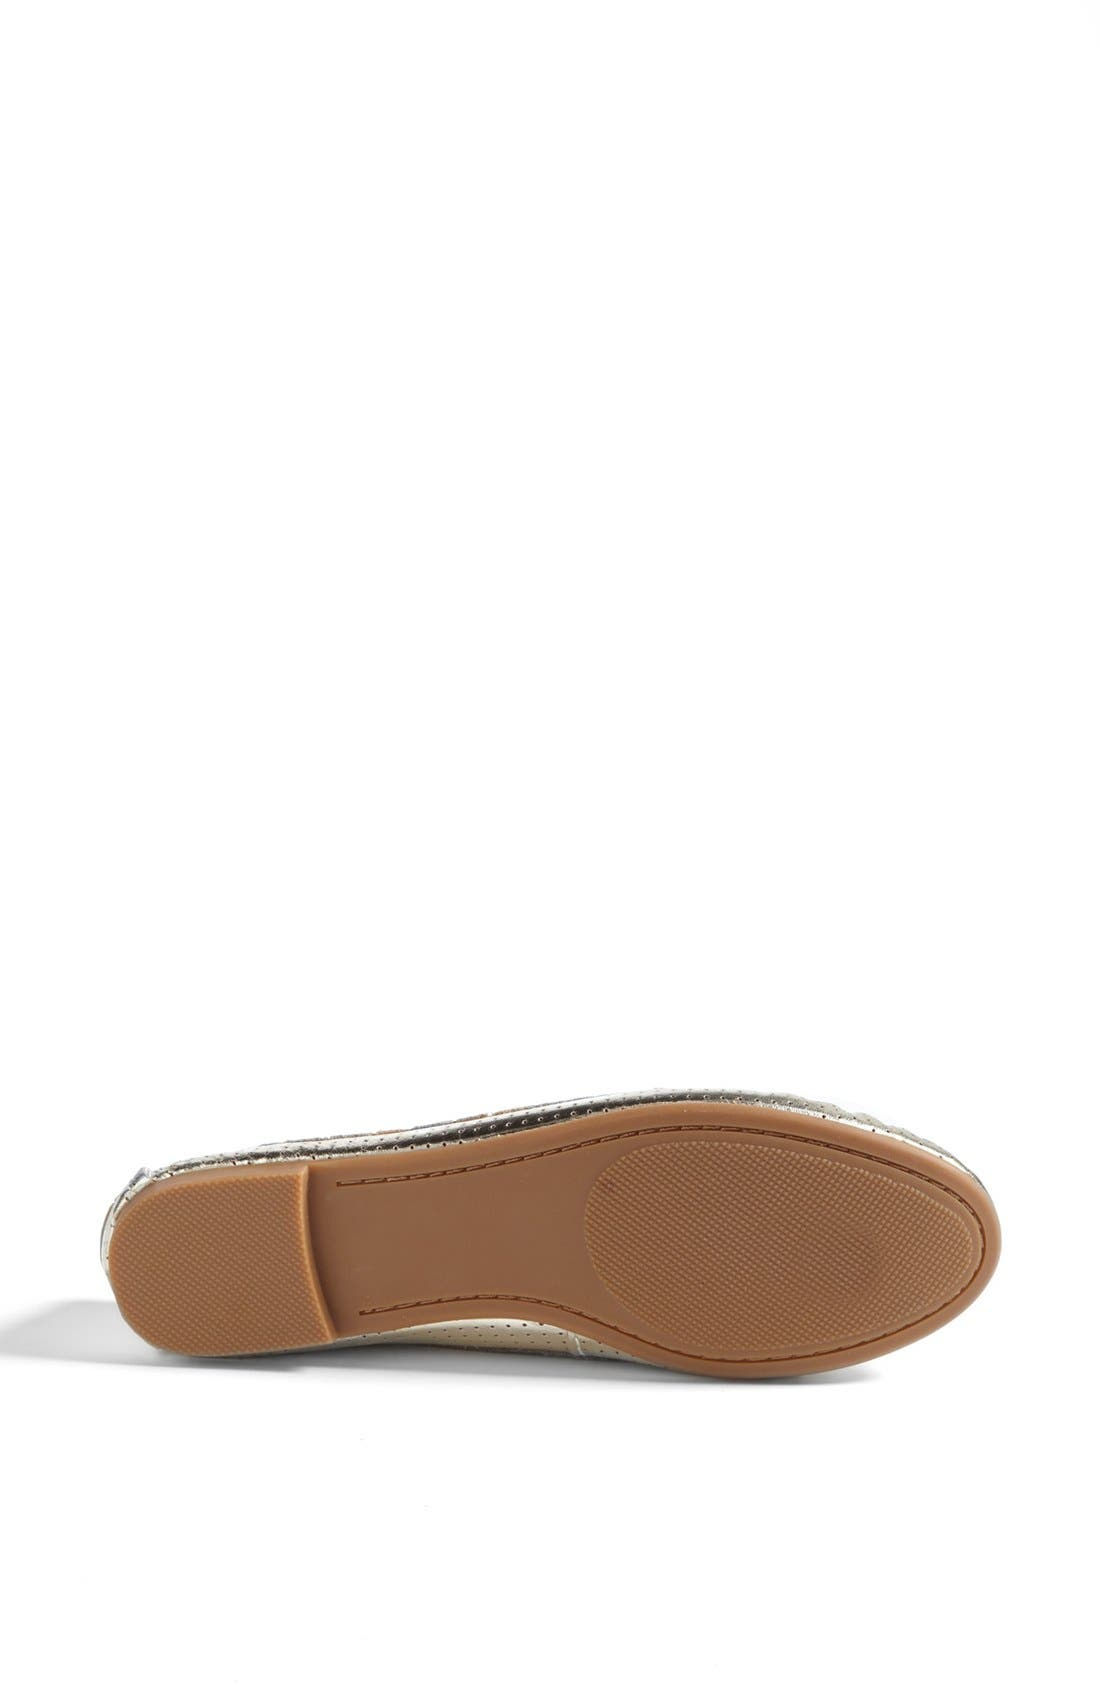 Alternate Image 4  - Steve Madden 'Murphey' Leather Flat